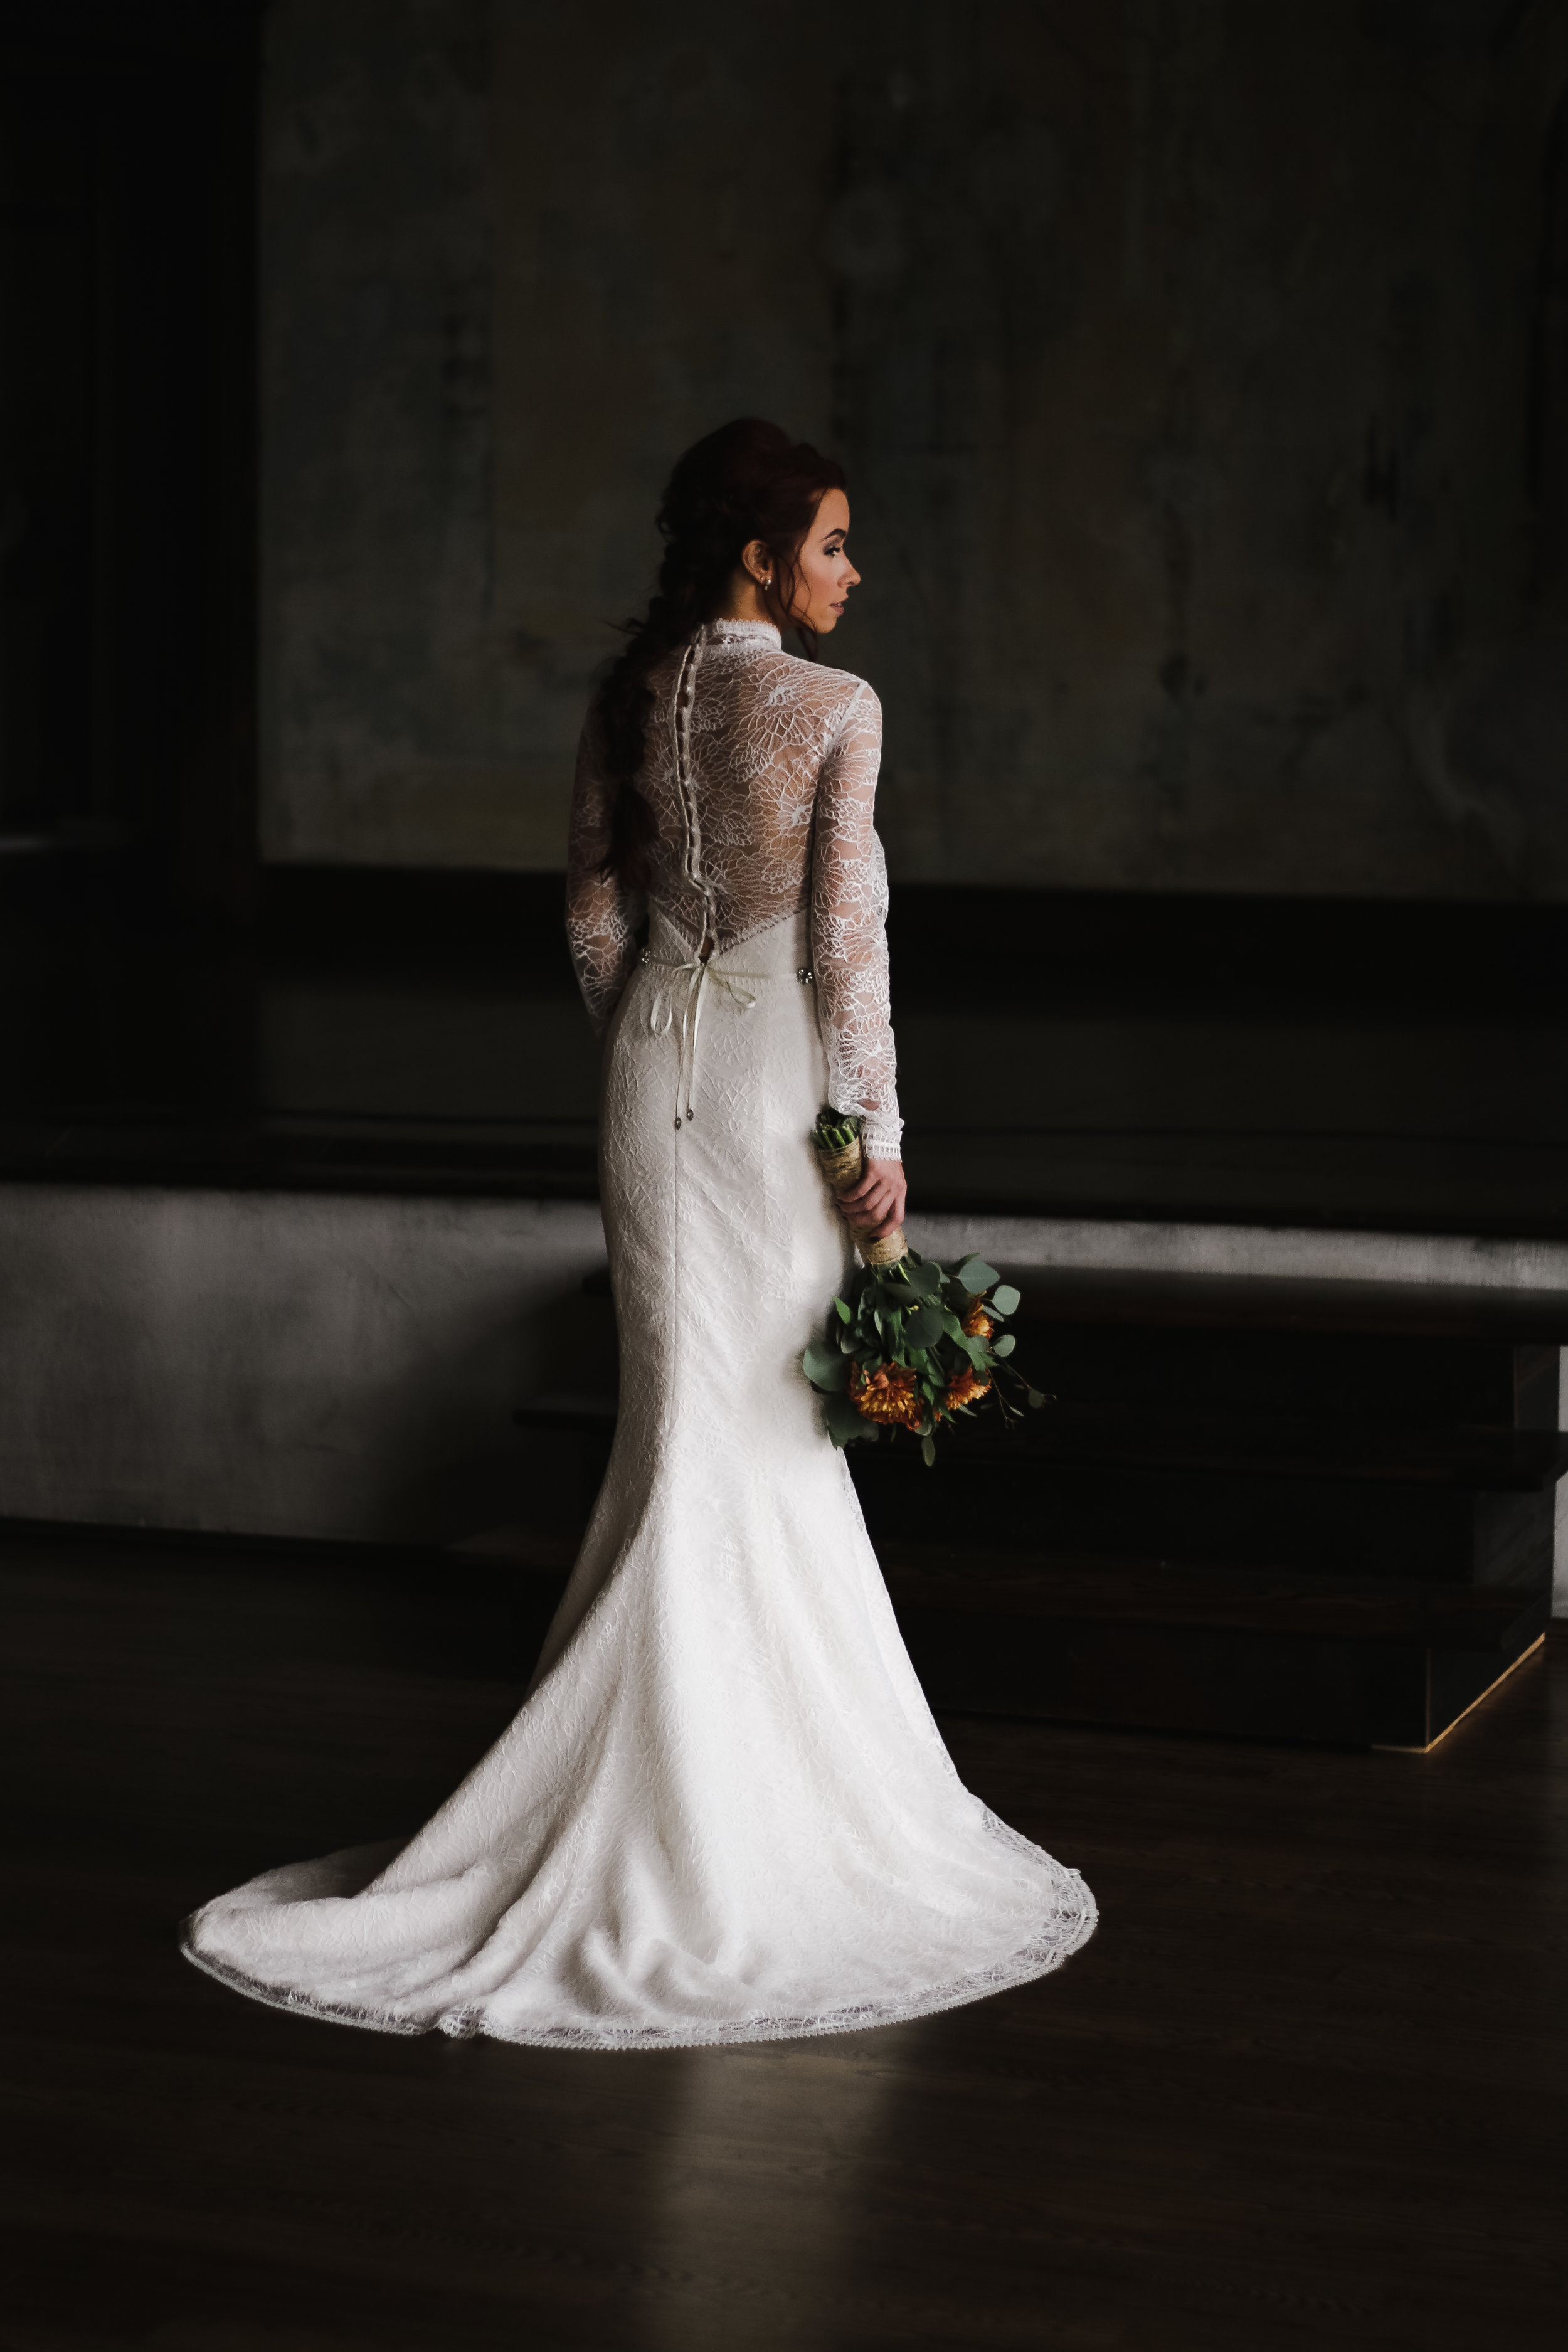 steph-100.jpg - Wedding Planning Tips for Brides by popular Indianapolis style blogger Trendy in Indy